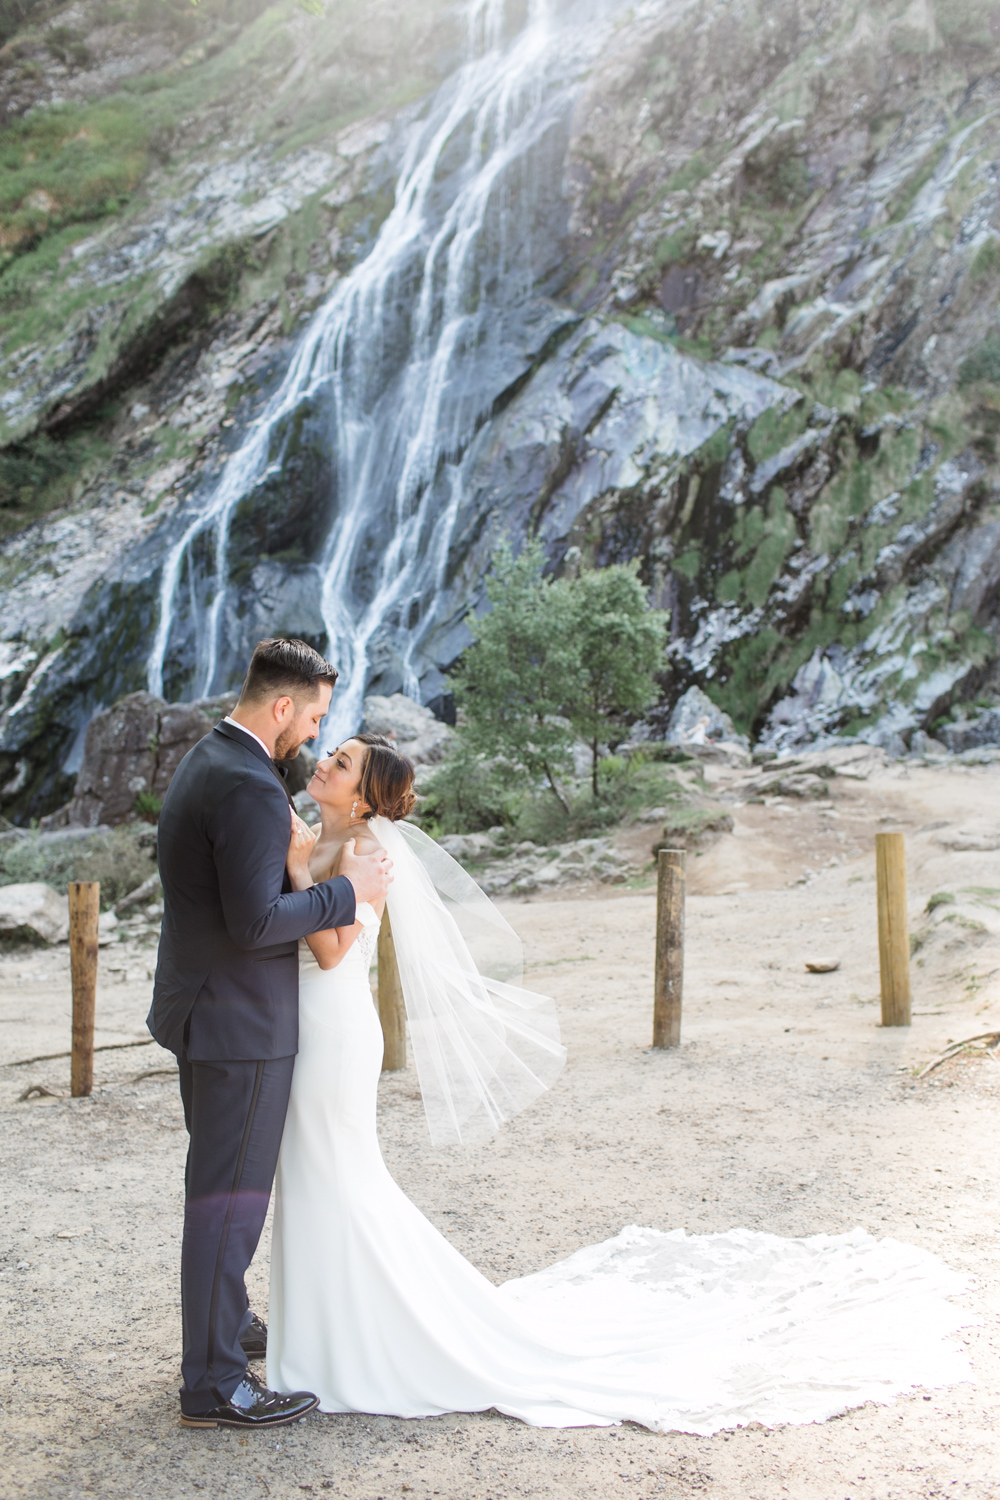 bride and groom in front of a waterfall in powerscourt wicklow ireland wearing an off shoulder white dress and a black tux